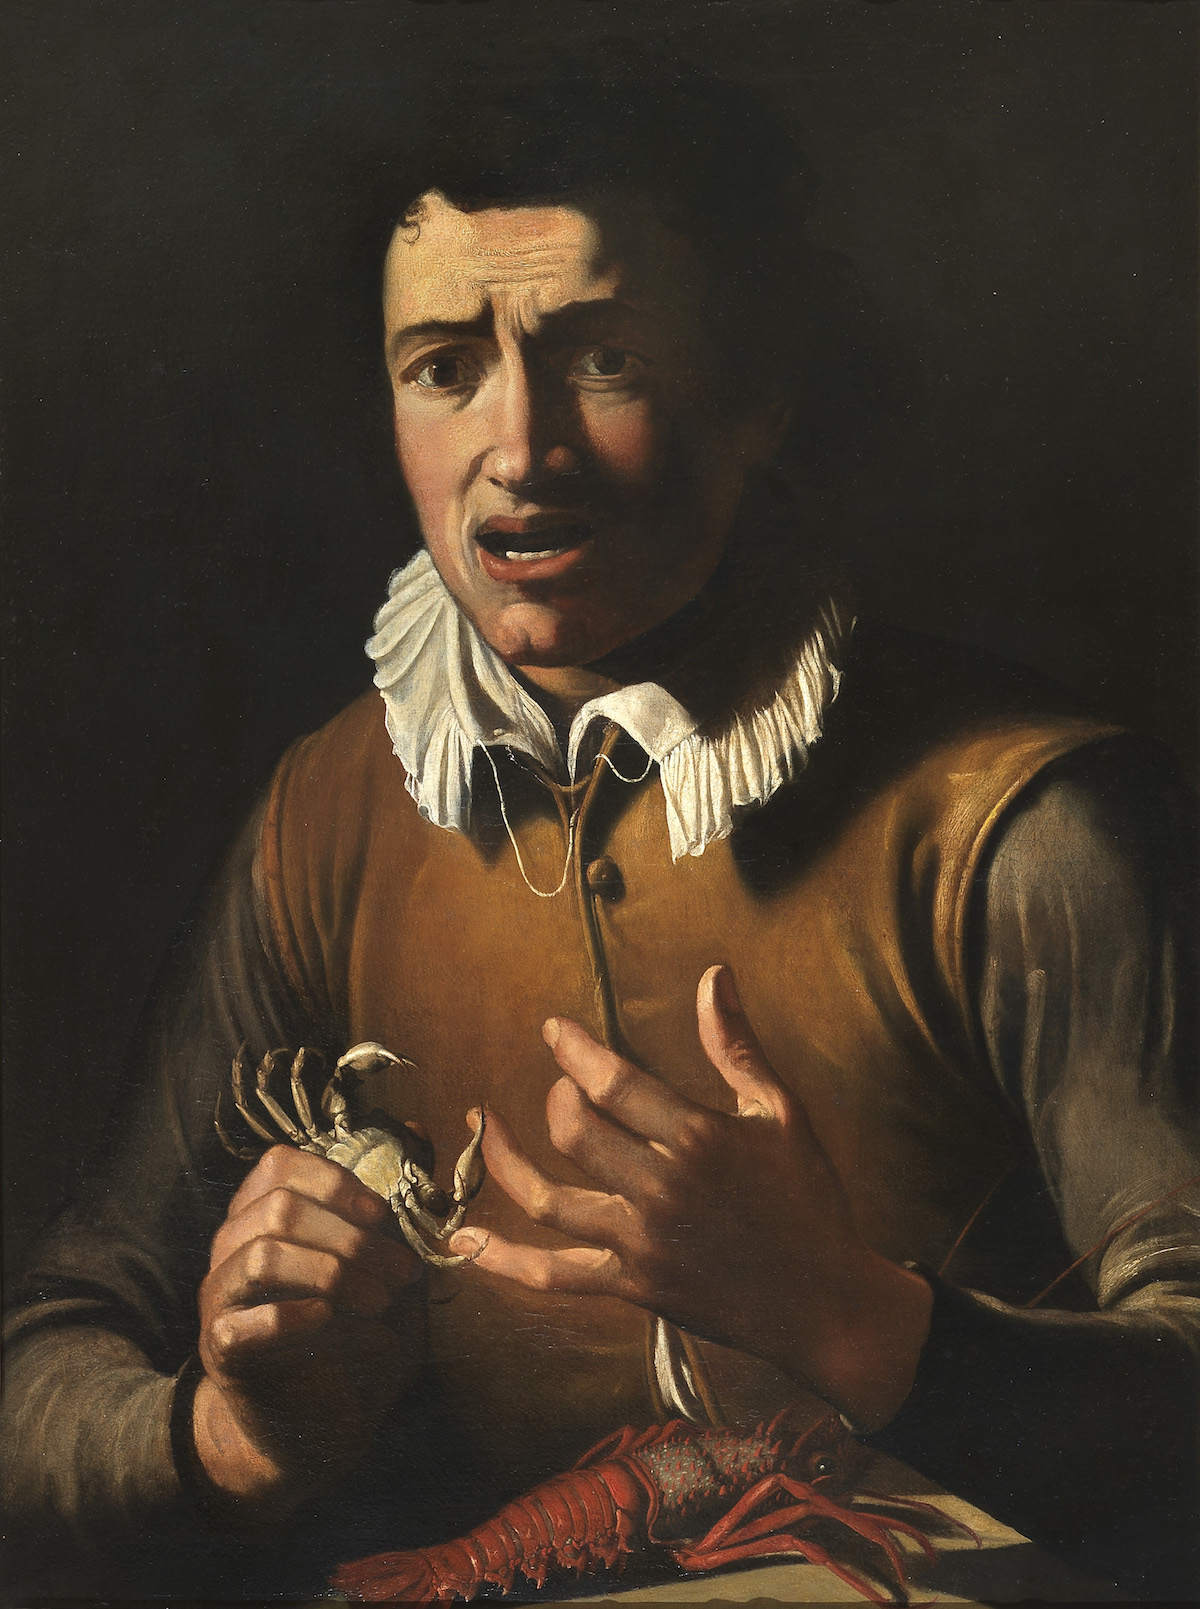 BARTOLOMEO CARVAROZZI, ATTRIBUTED TO   BOY BITTEN BY A CRAB